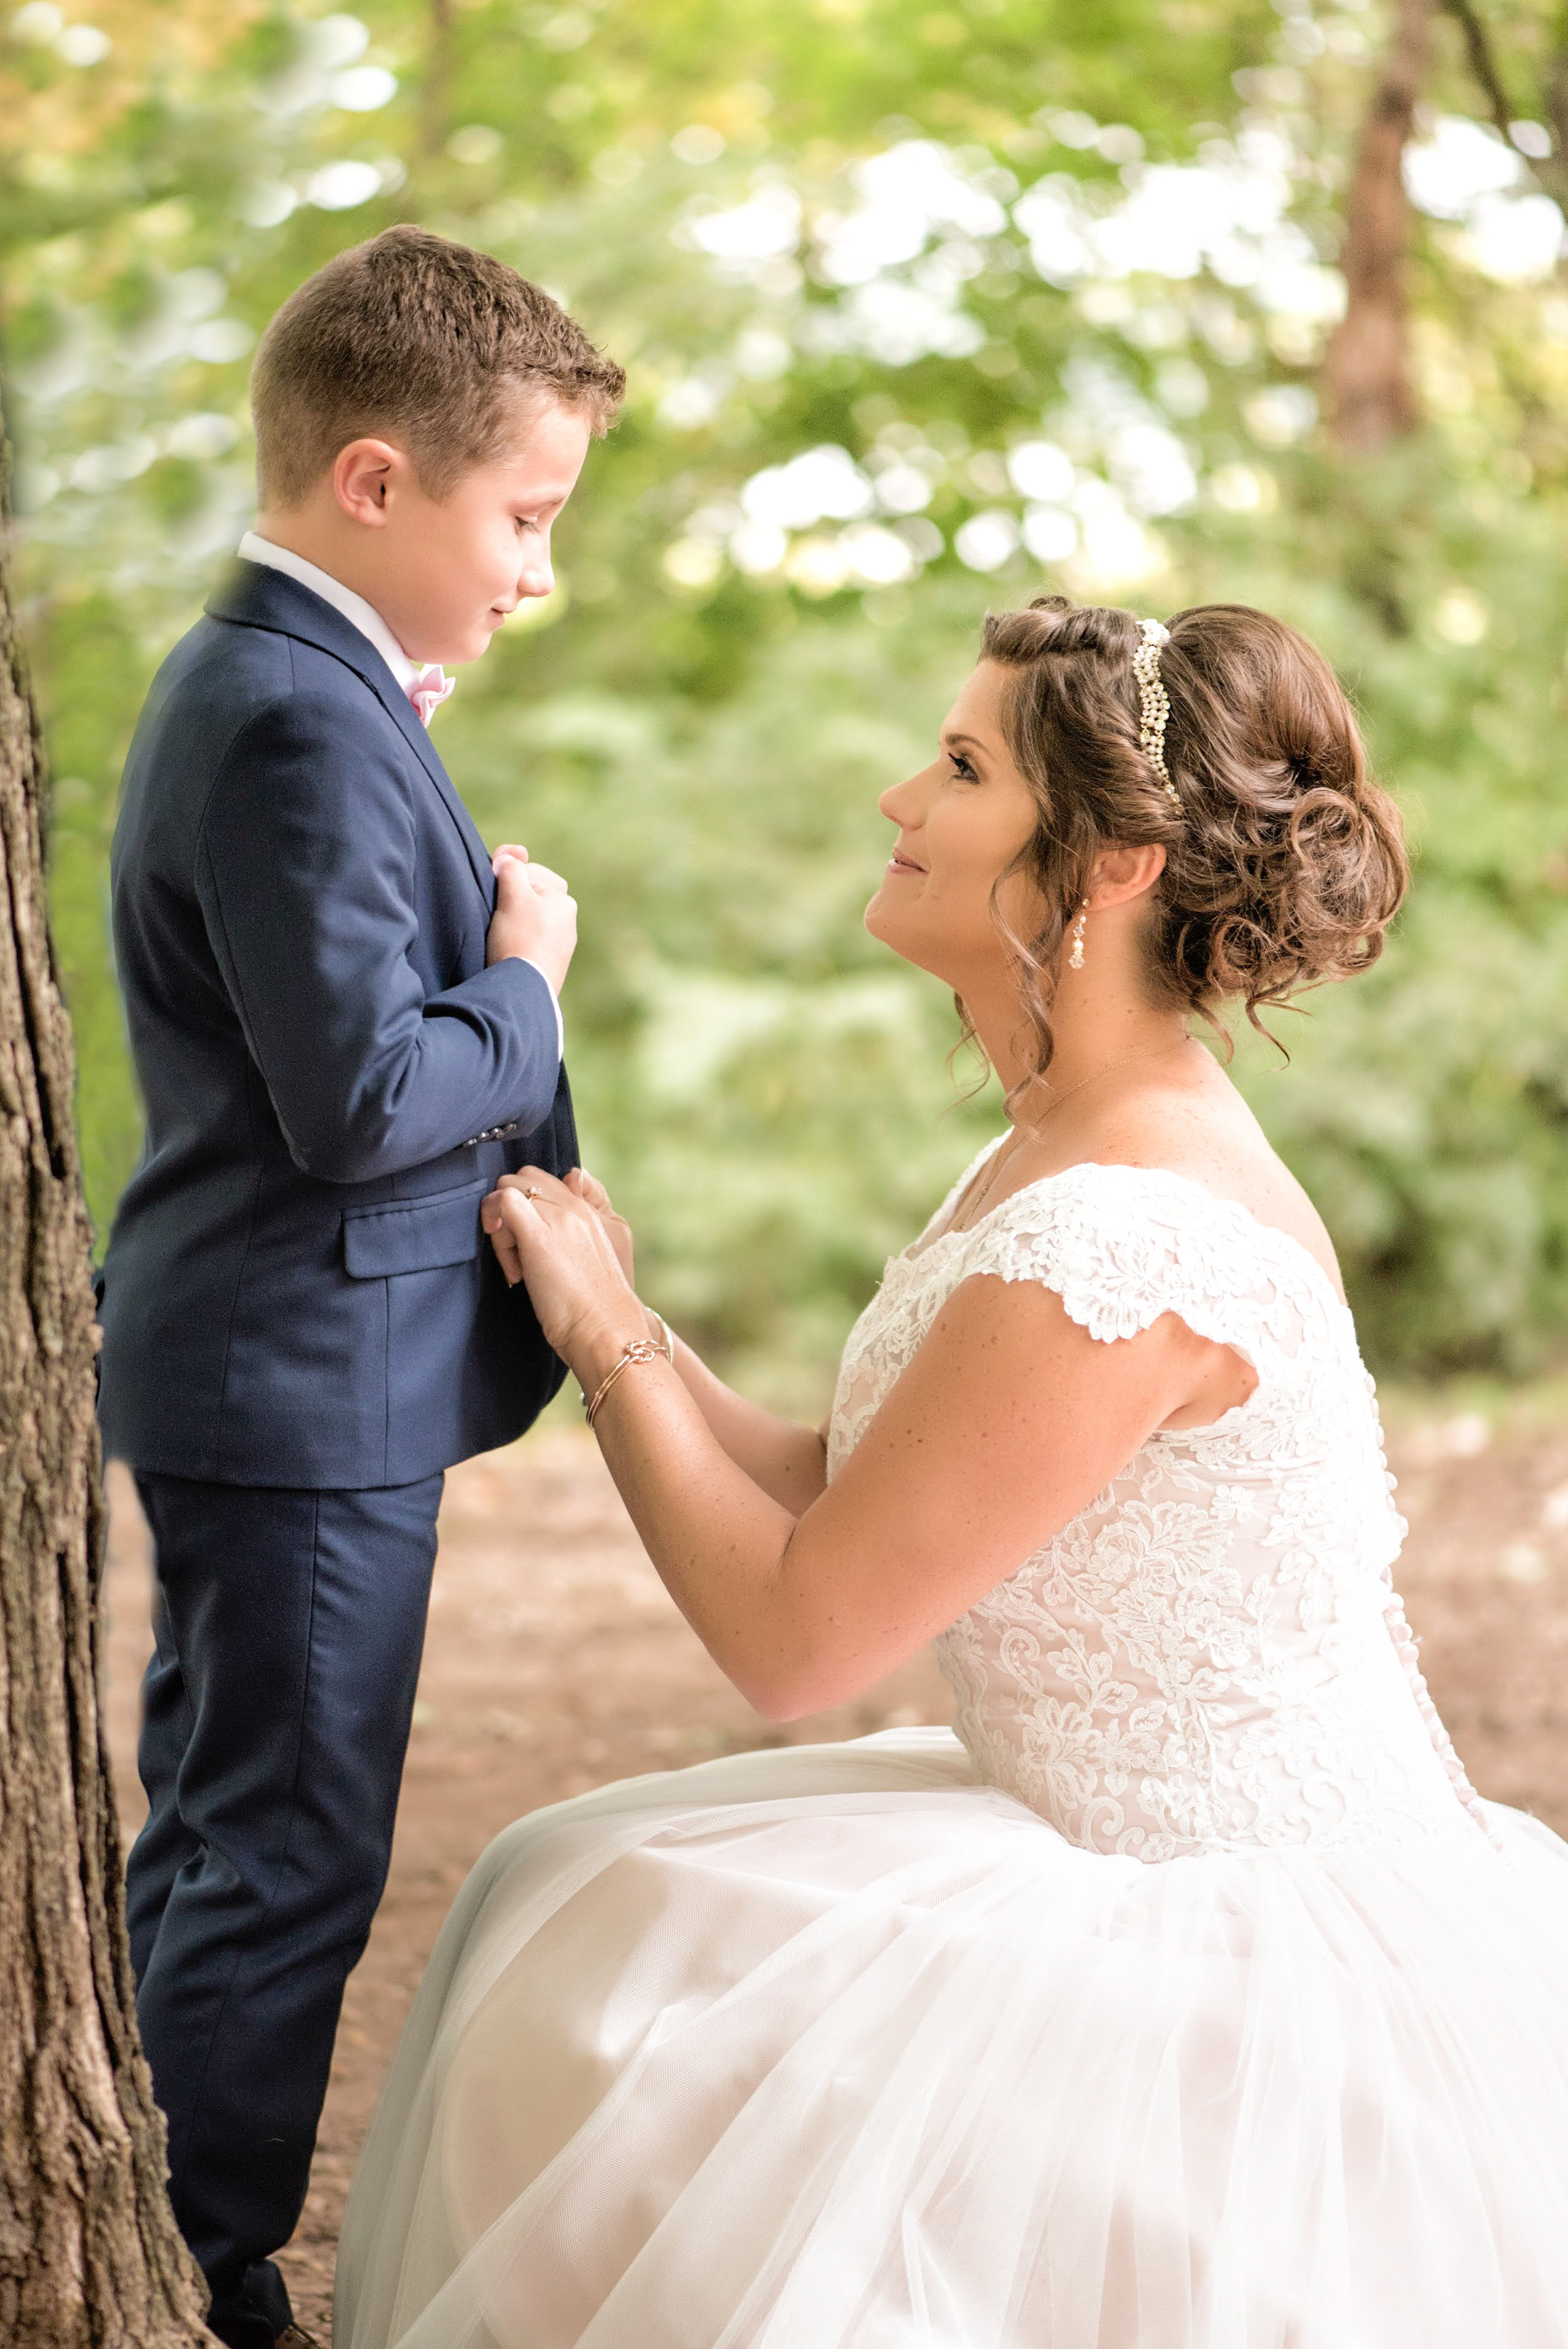 bride-ring-bearer-outdoors-forest-trees-bark-getting-ready.jpg